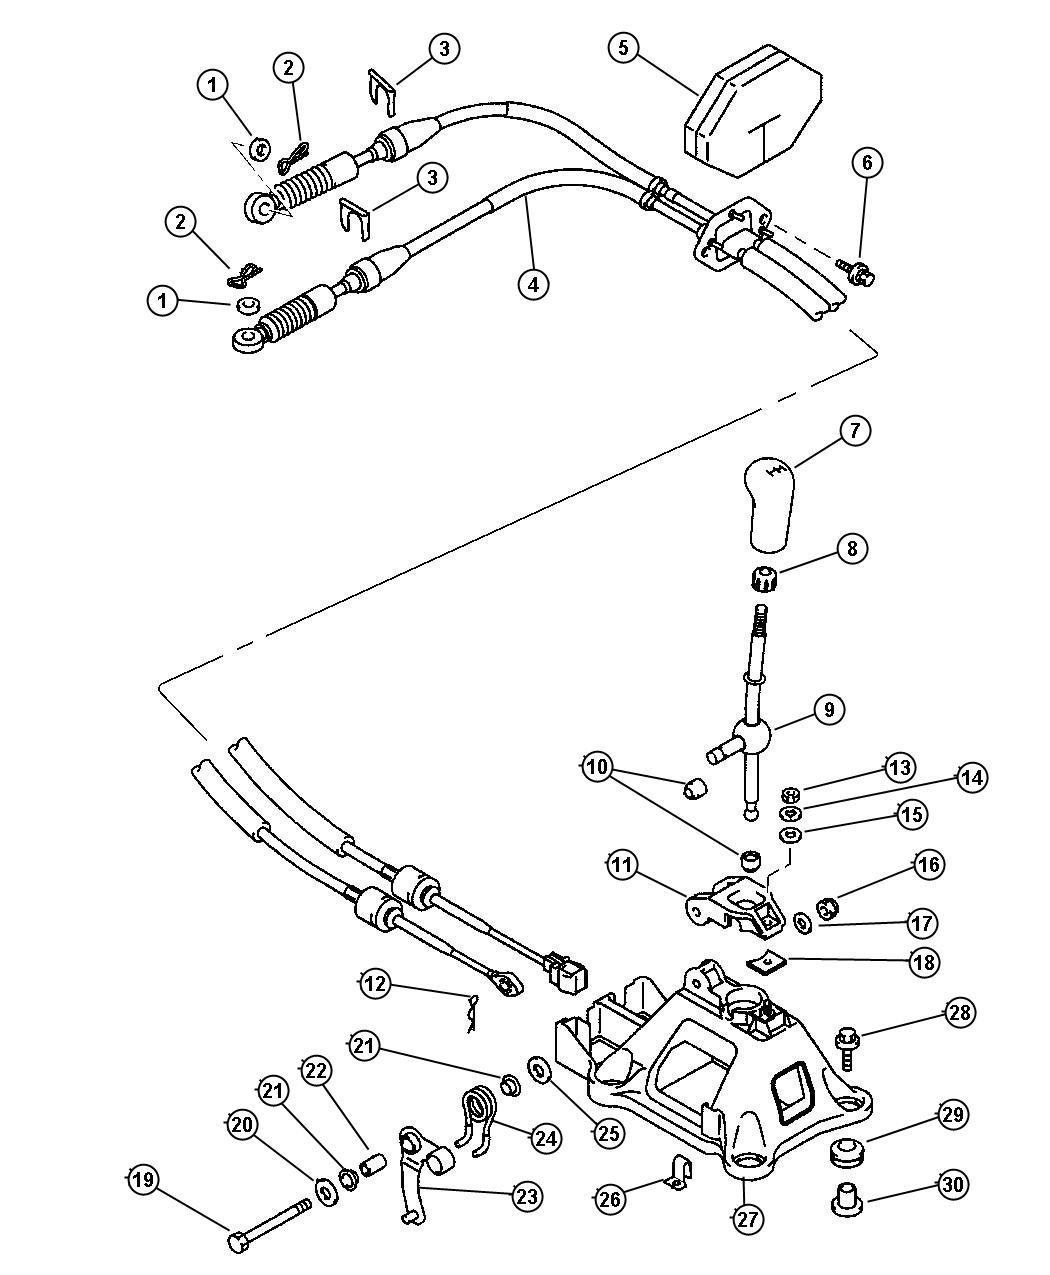 Service manual [Install Shift Cable On A 2007 Chrysler